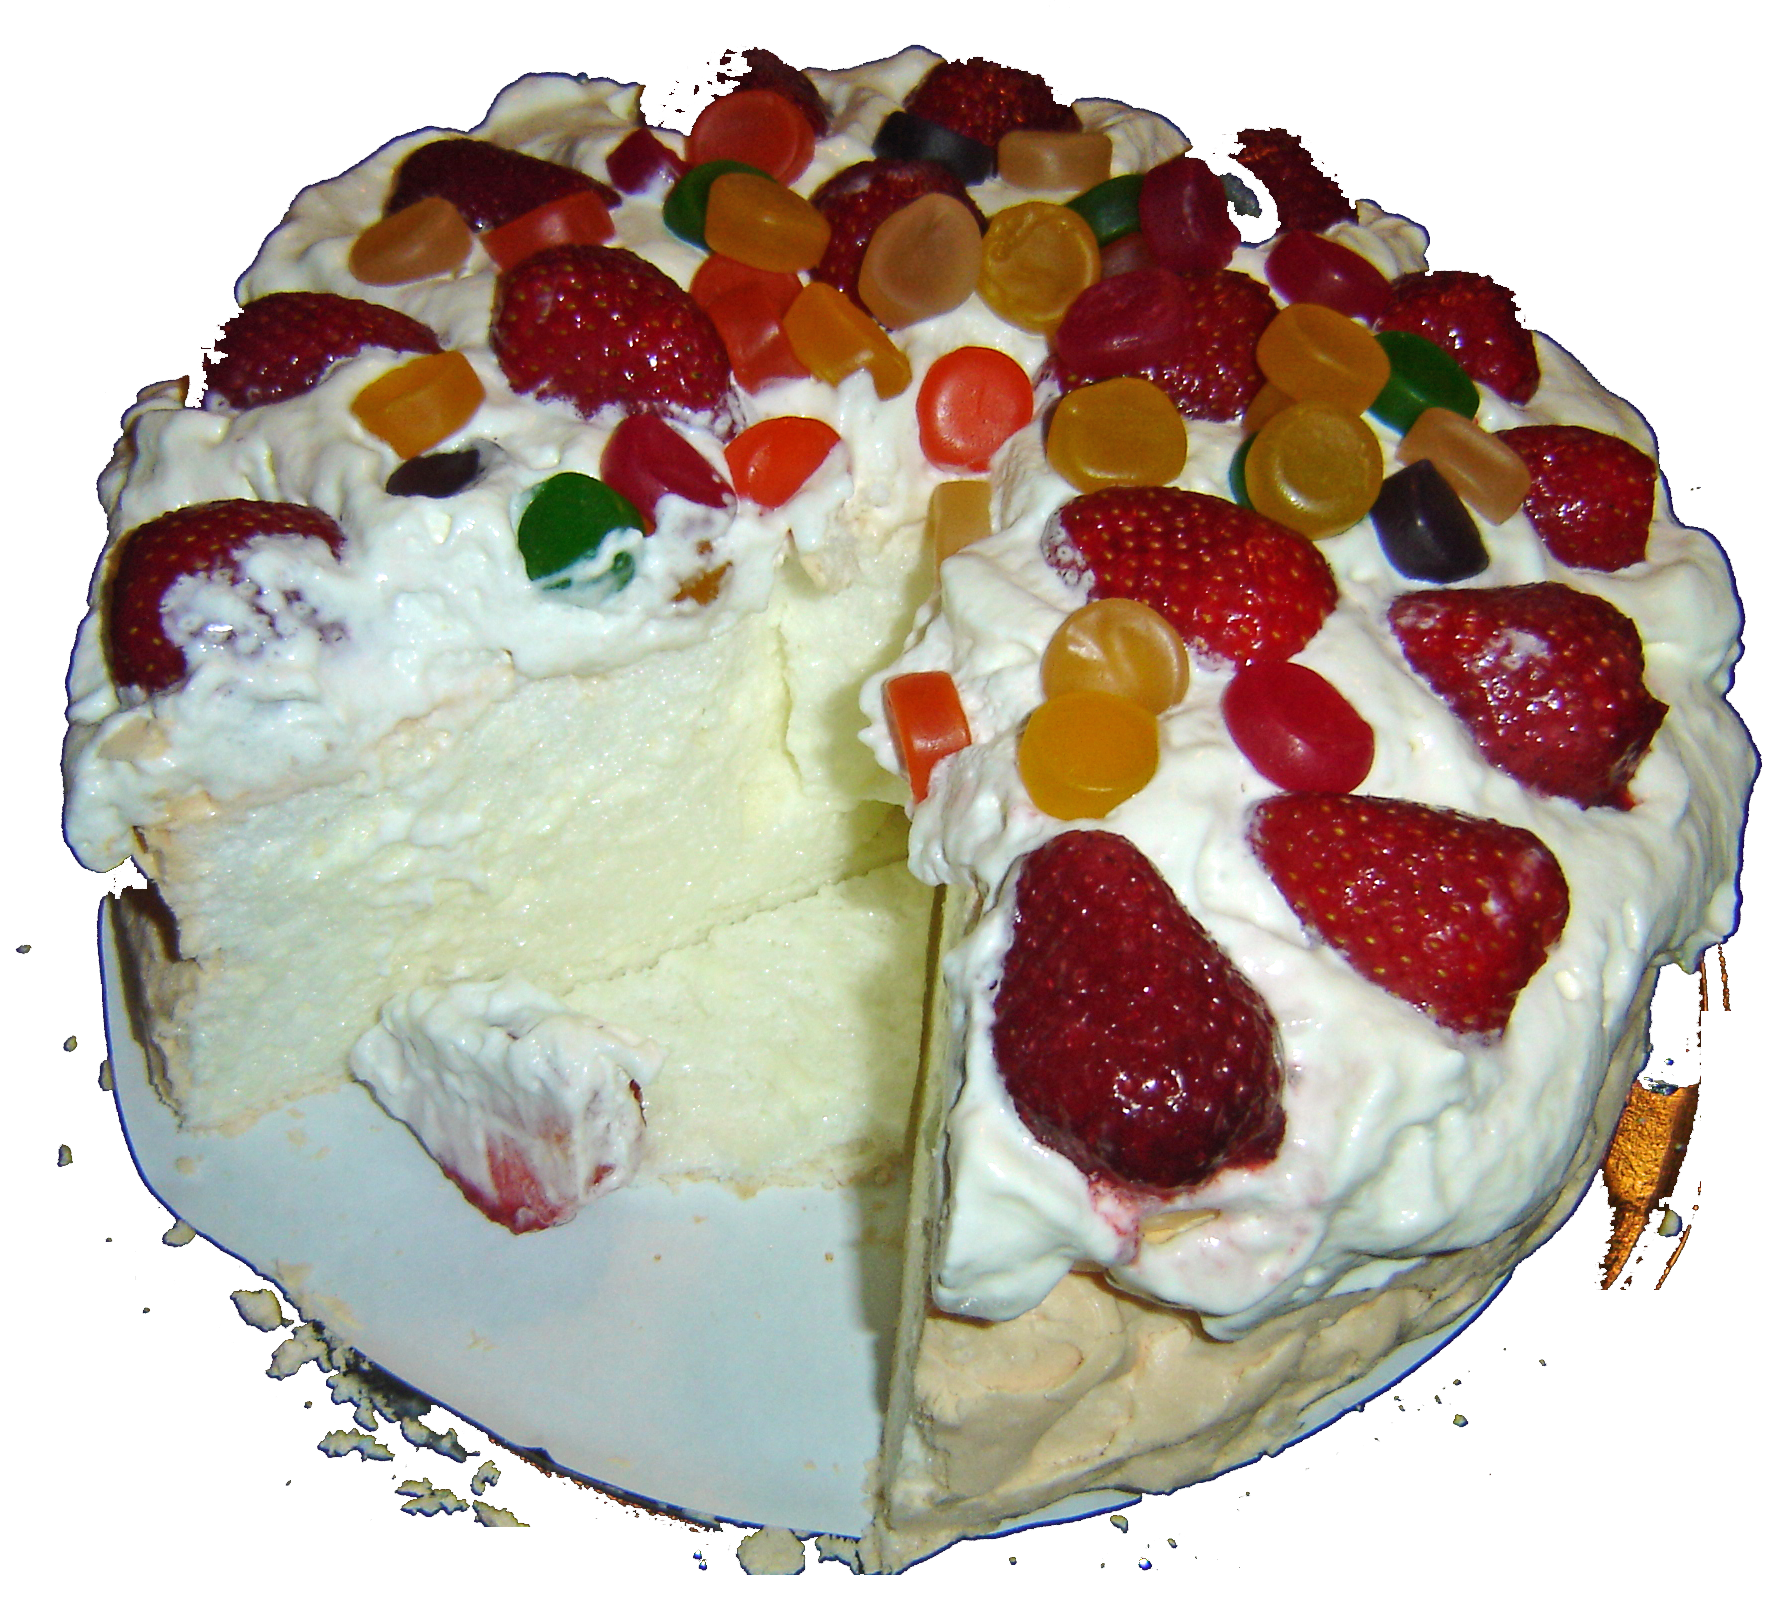 File:Pavlova.png - Wikimedia Commons